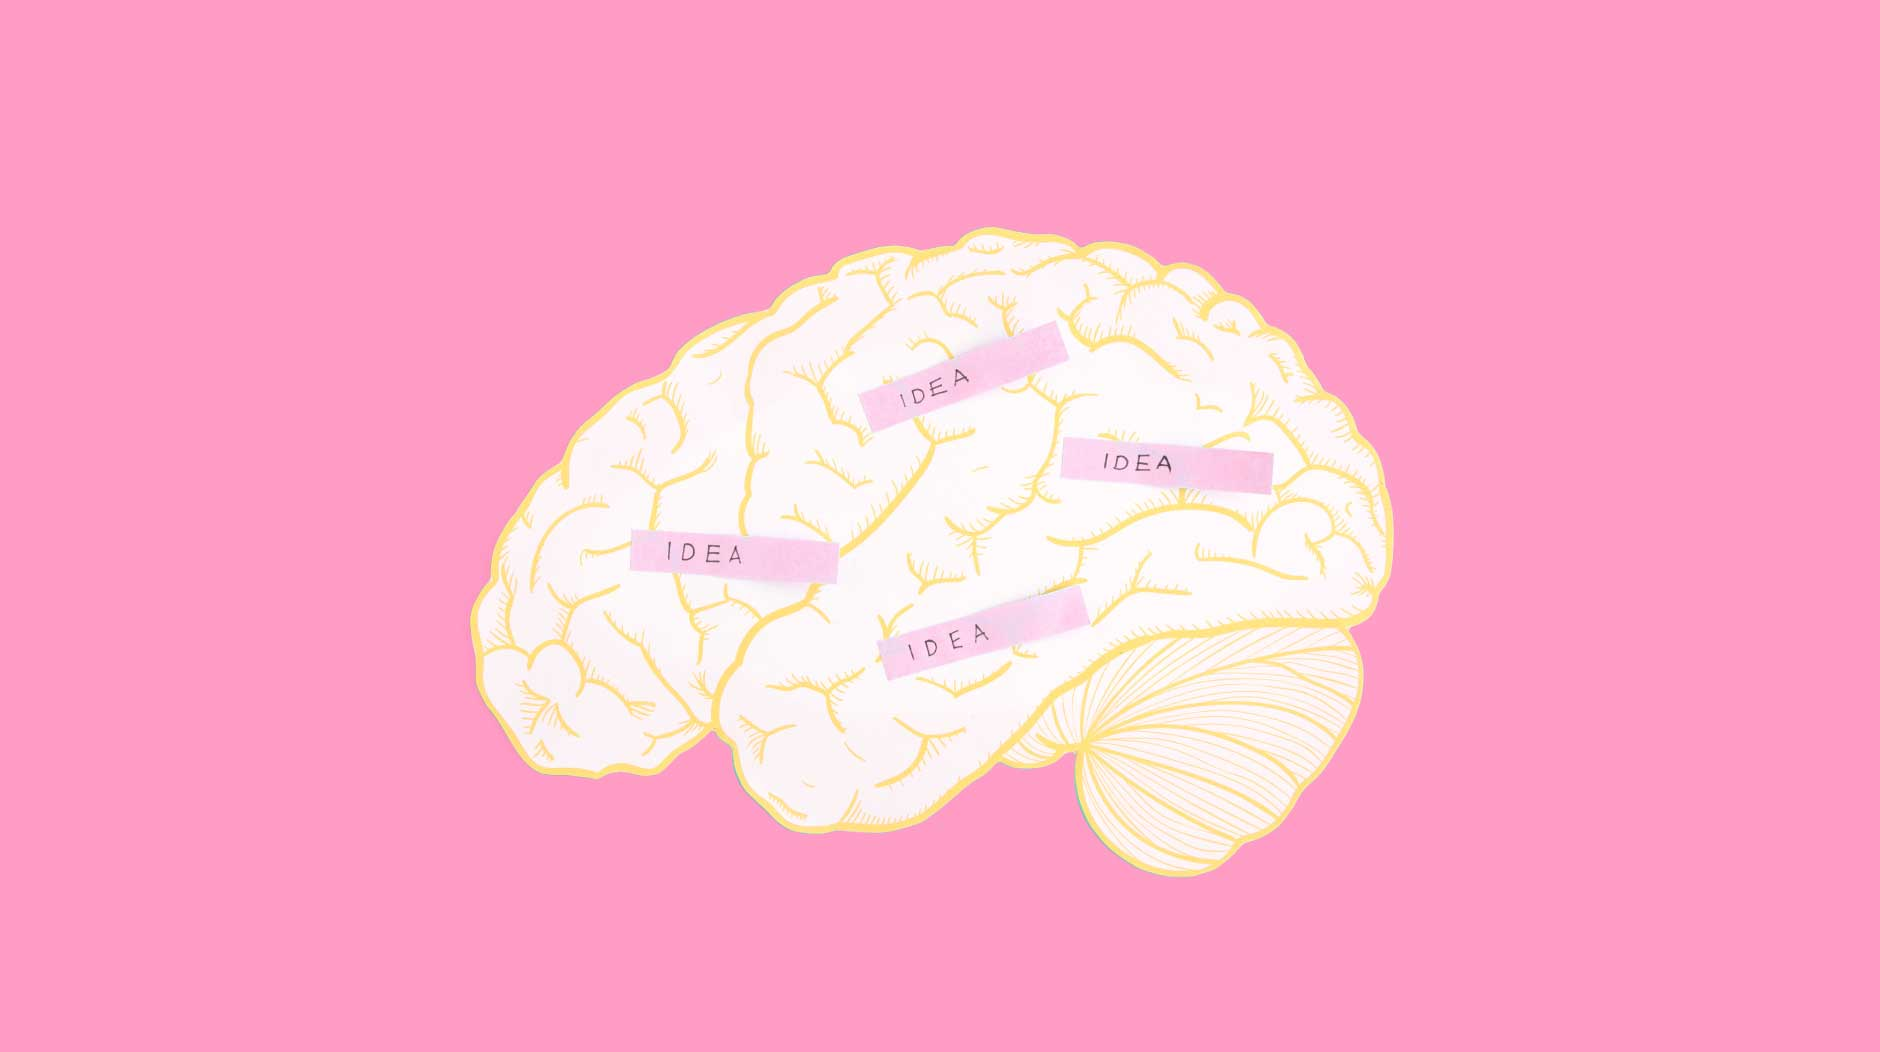 An image of brain on a pink background